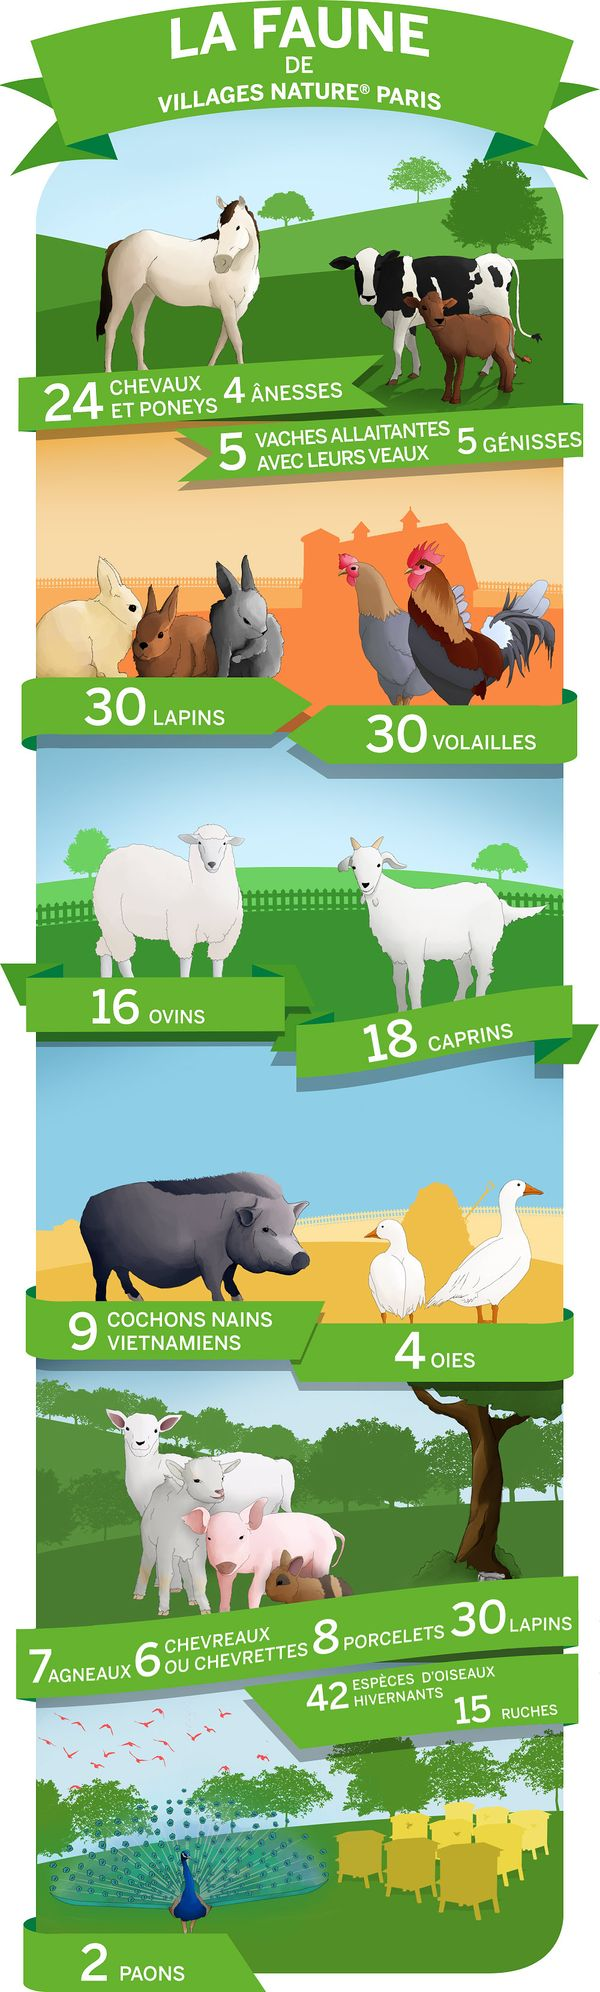 infographie faune villages nature paris